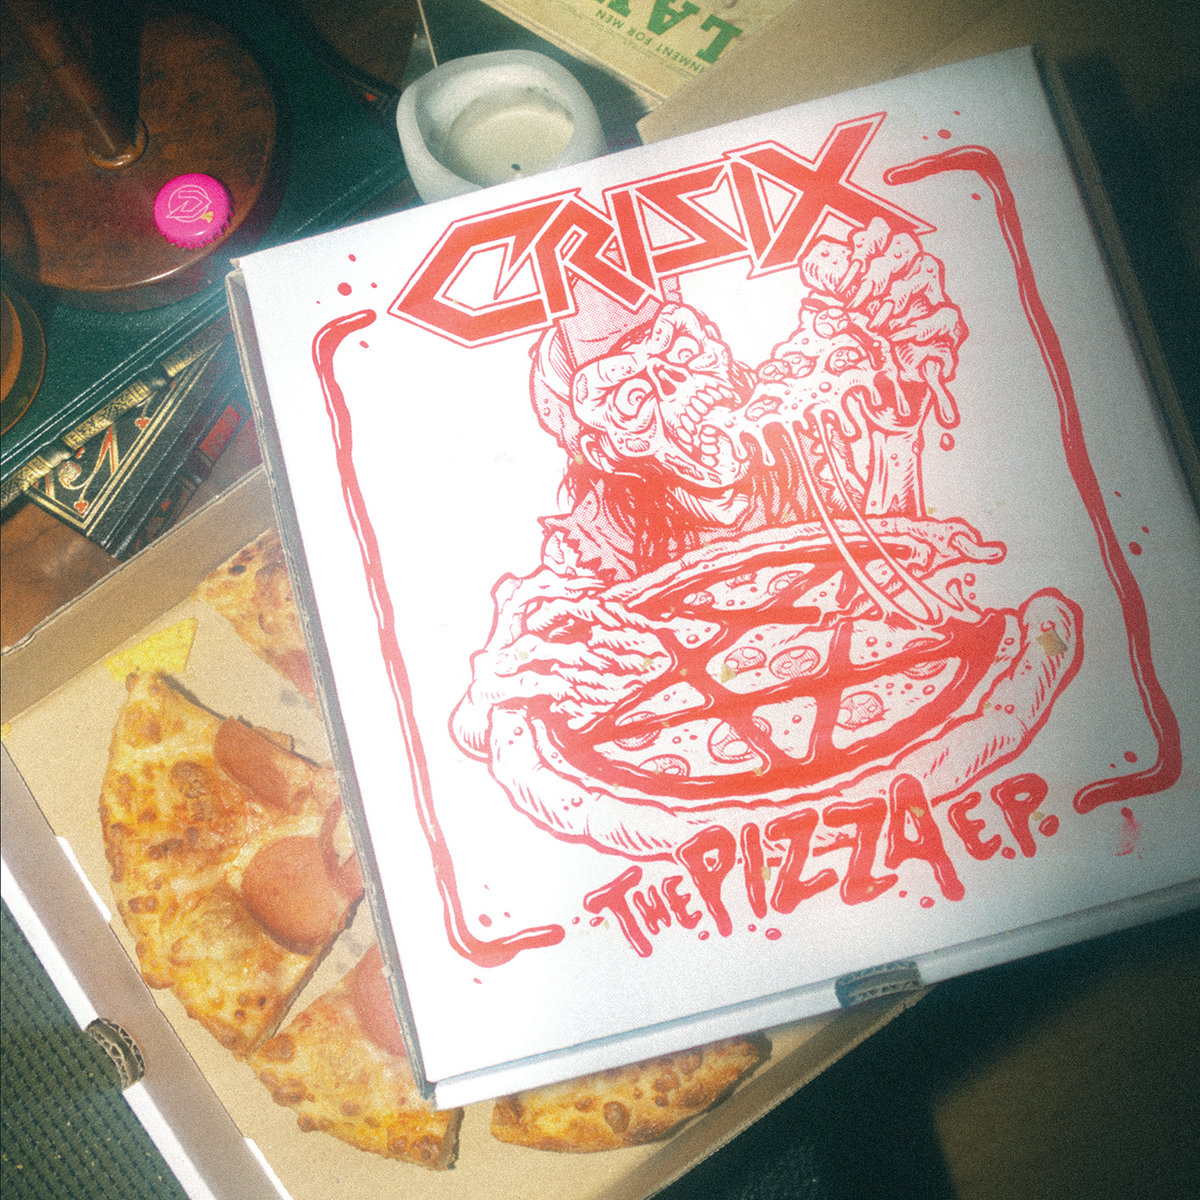 crisix the pizza ep